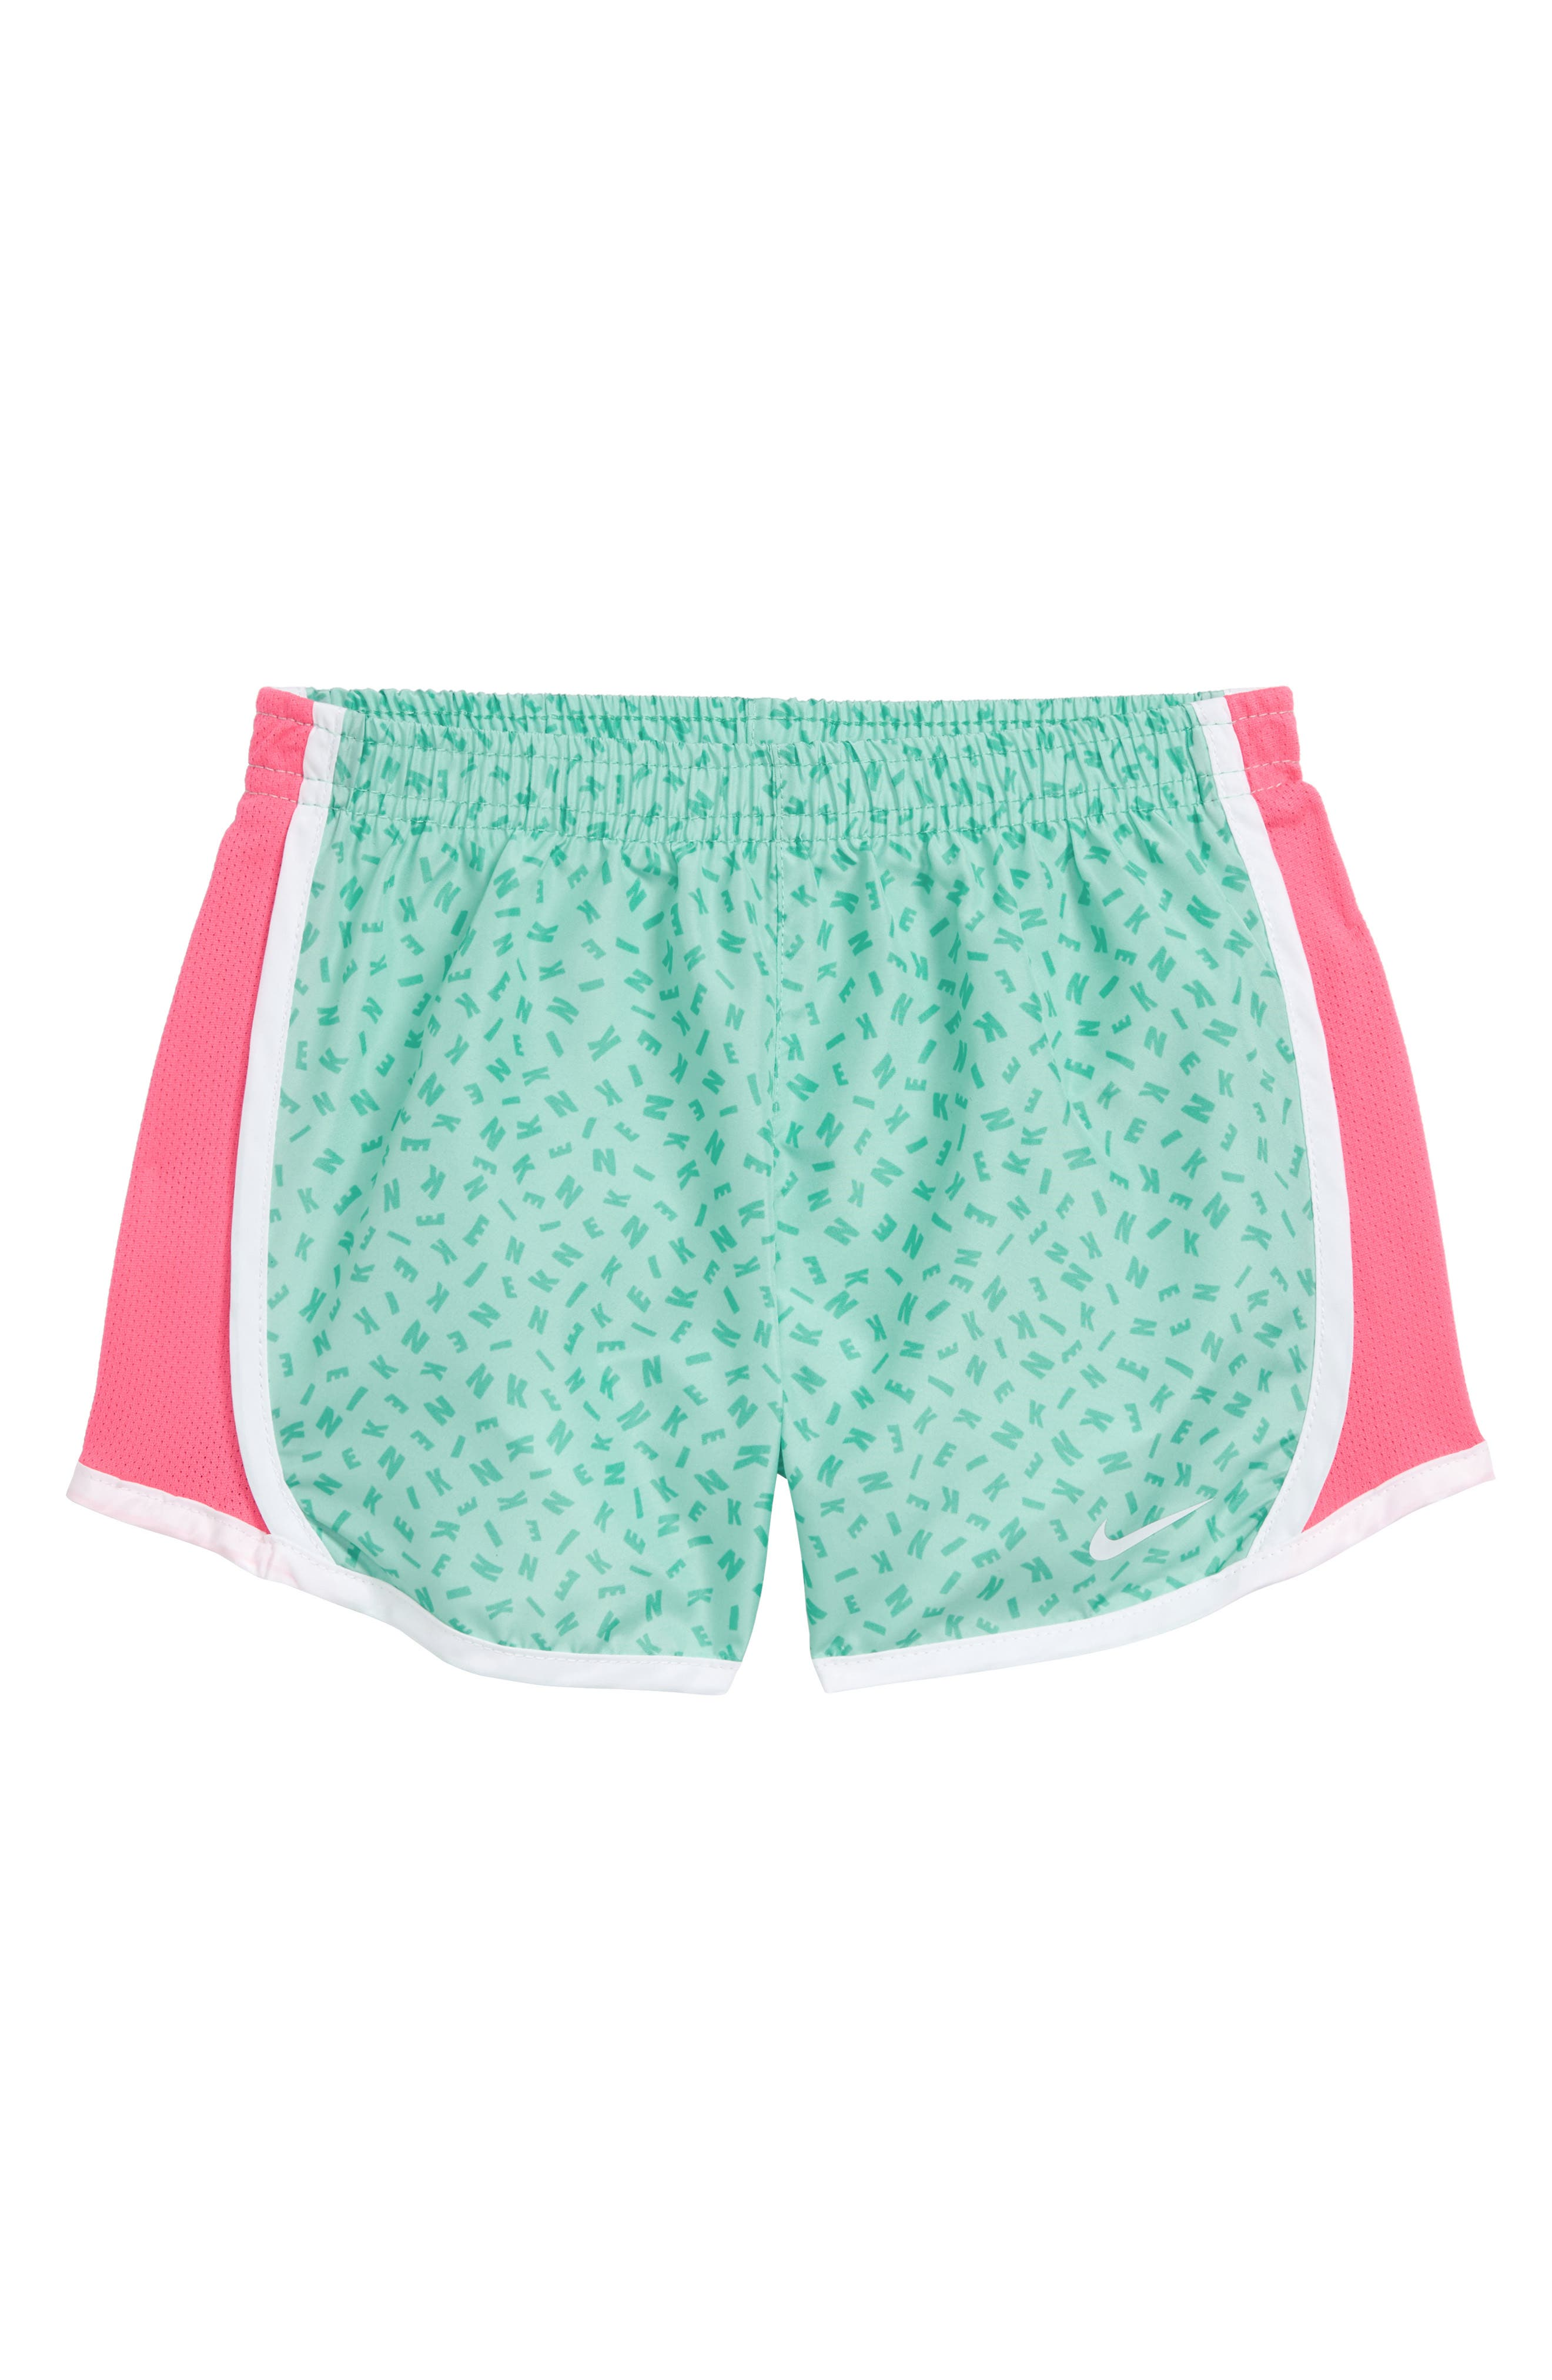 Tempo Short,                         Main,                         color, Kinetic Green